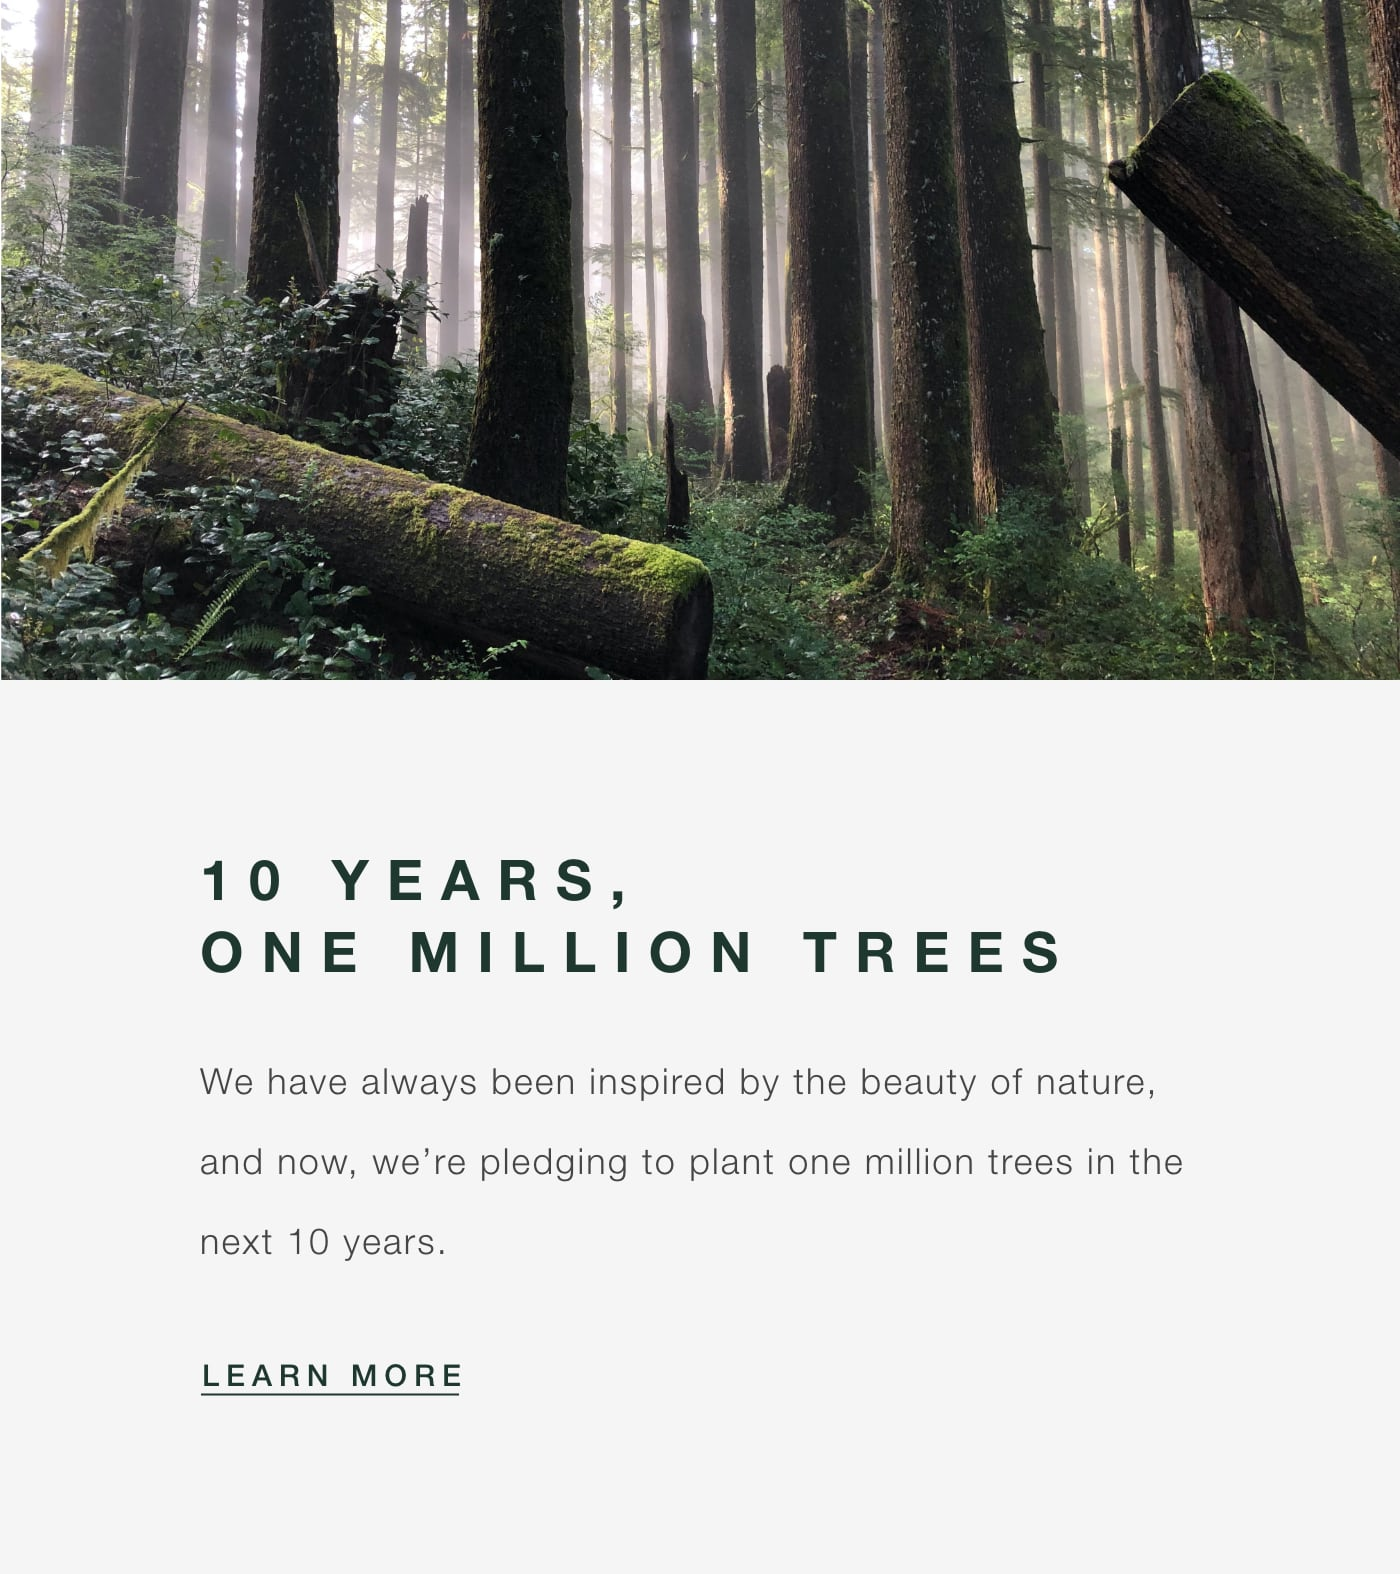 American Forests - 10 Years, One Million Trees